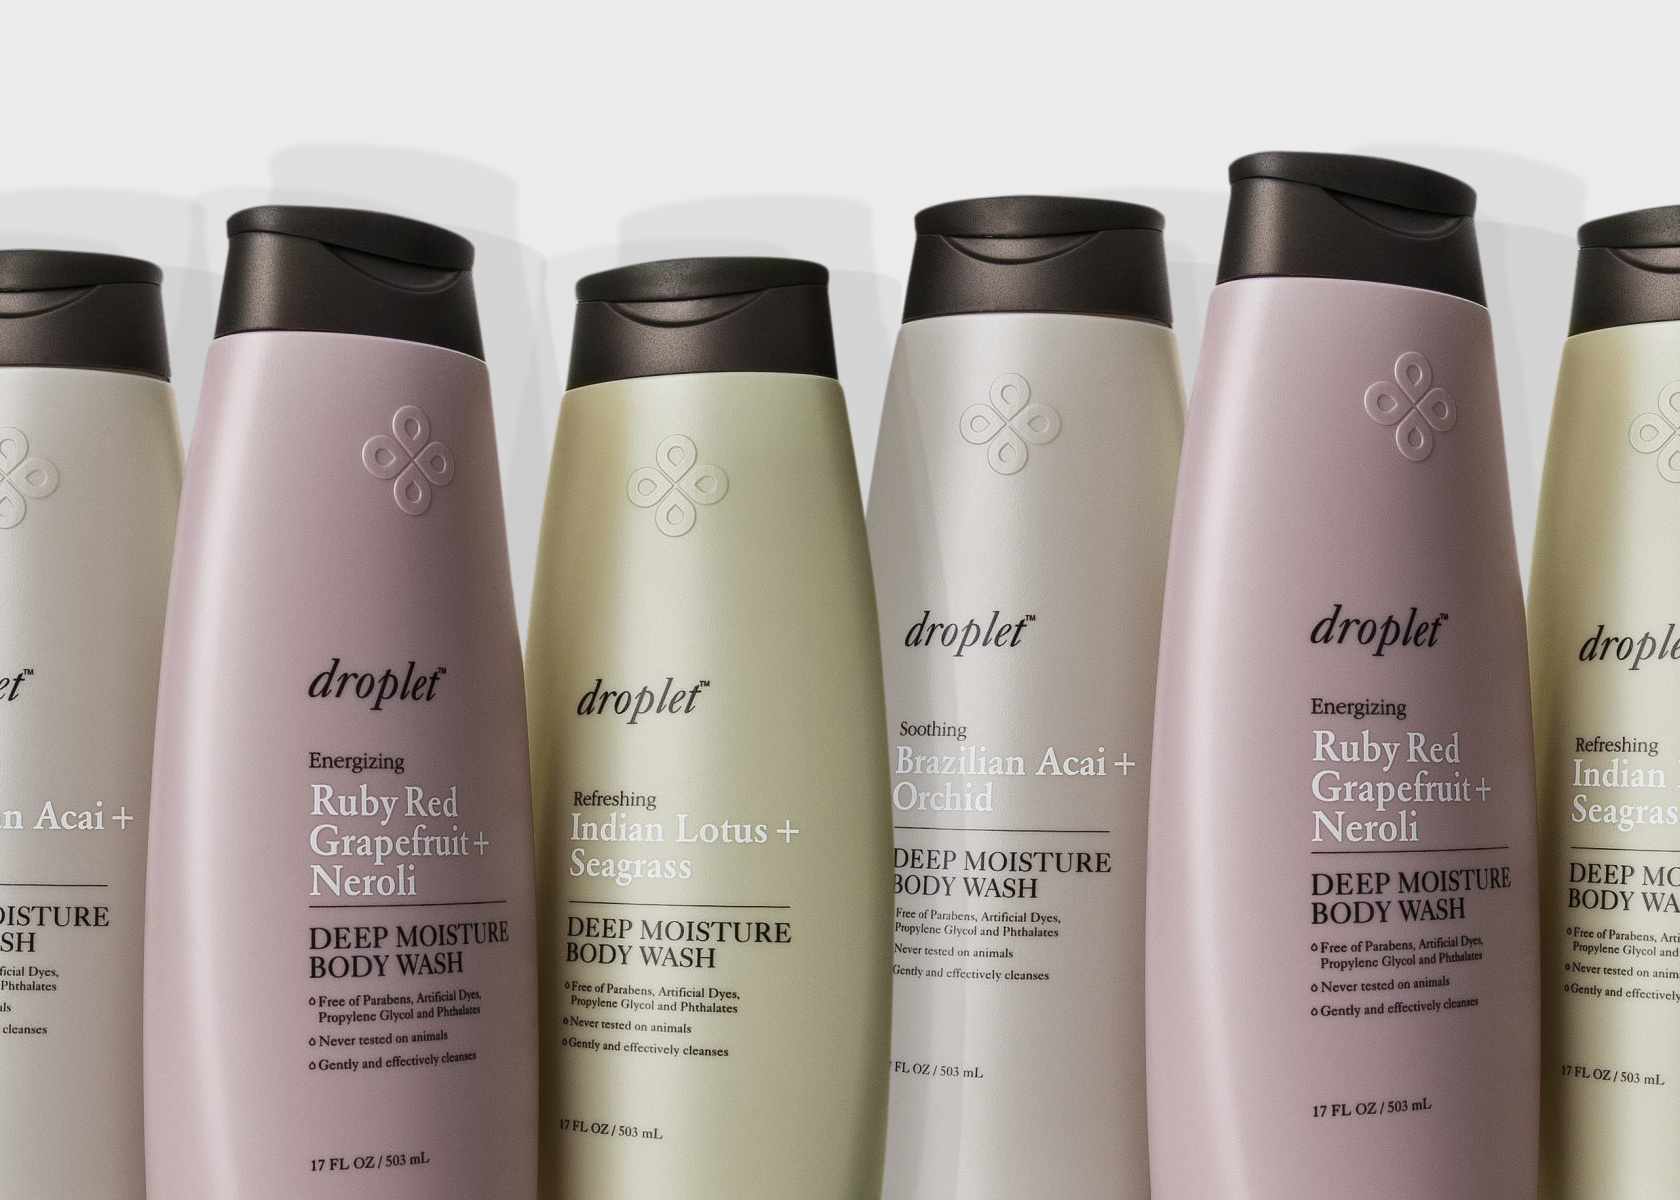 Droplet Body Washes